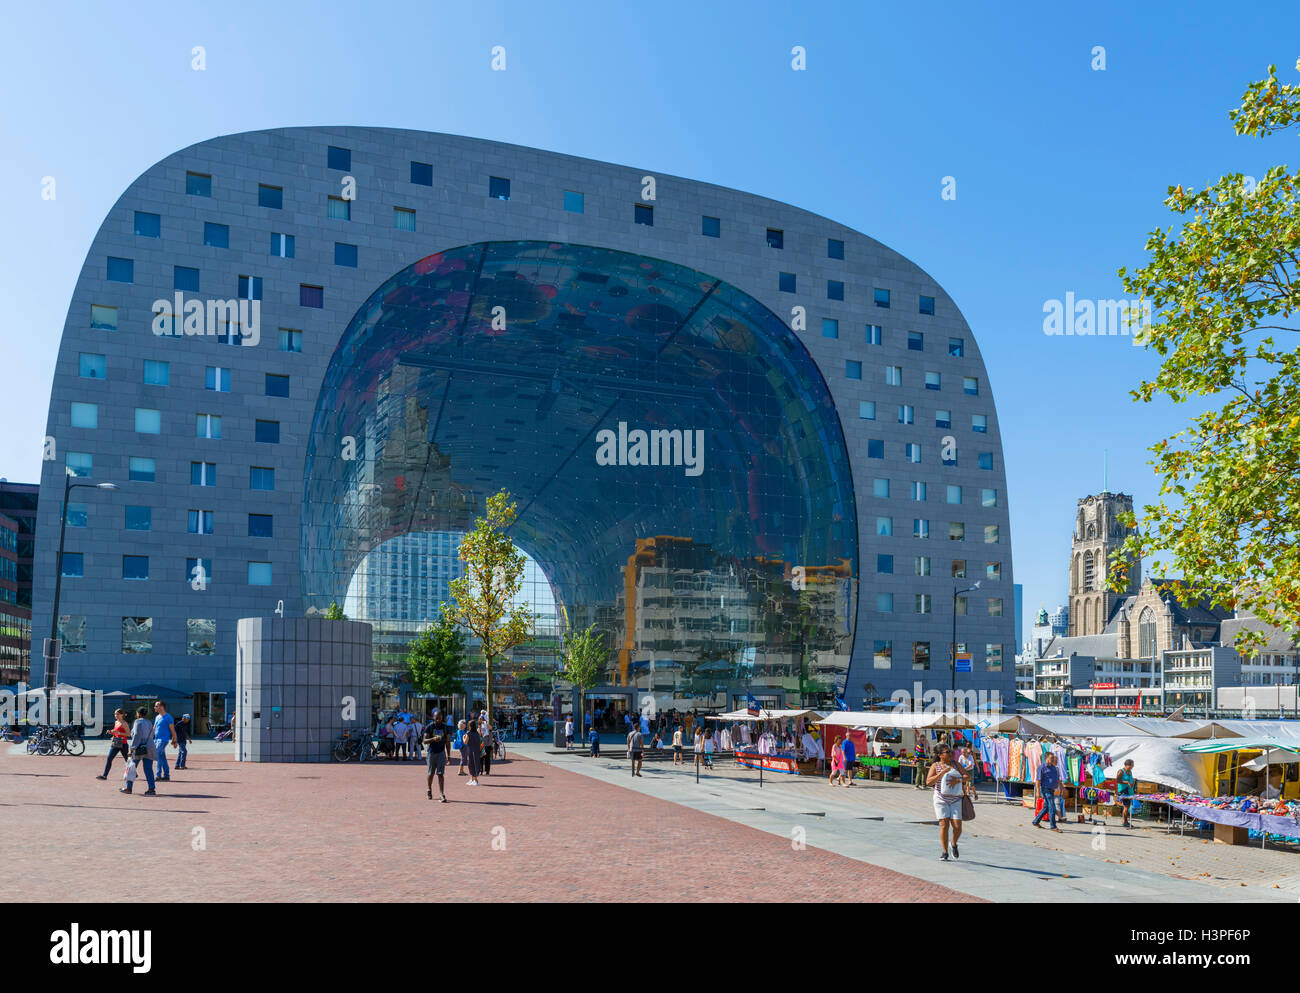 L'Markthal (Halle), Rotterdam, Pays-Bas Photo Stock